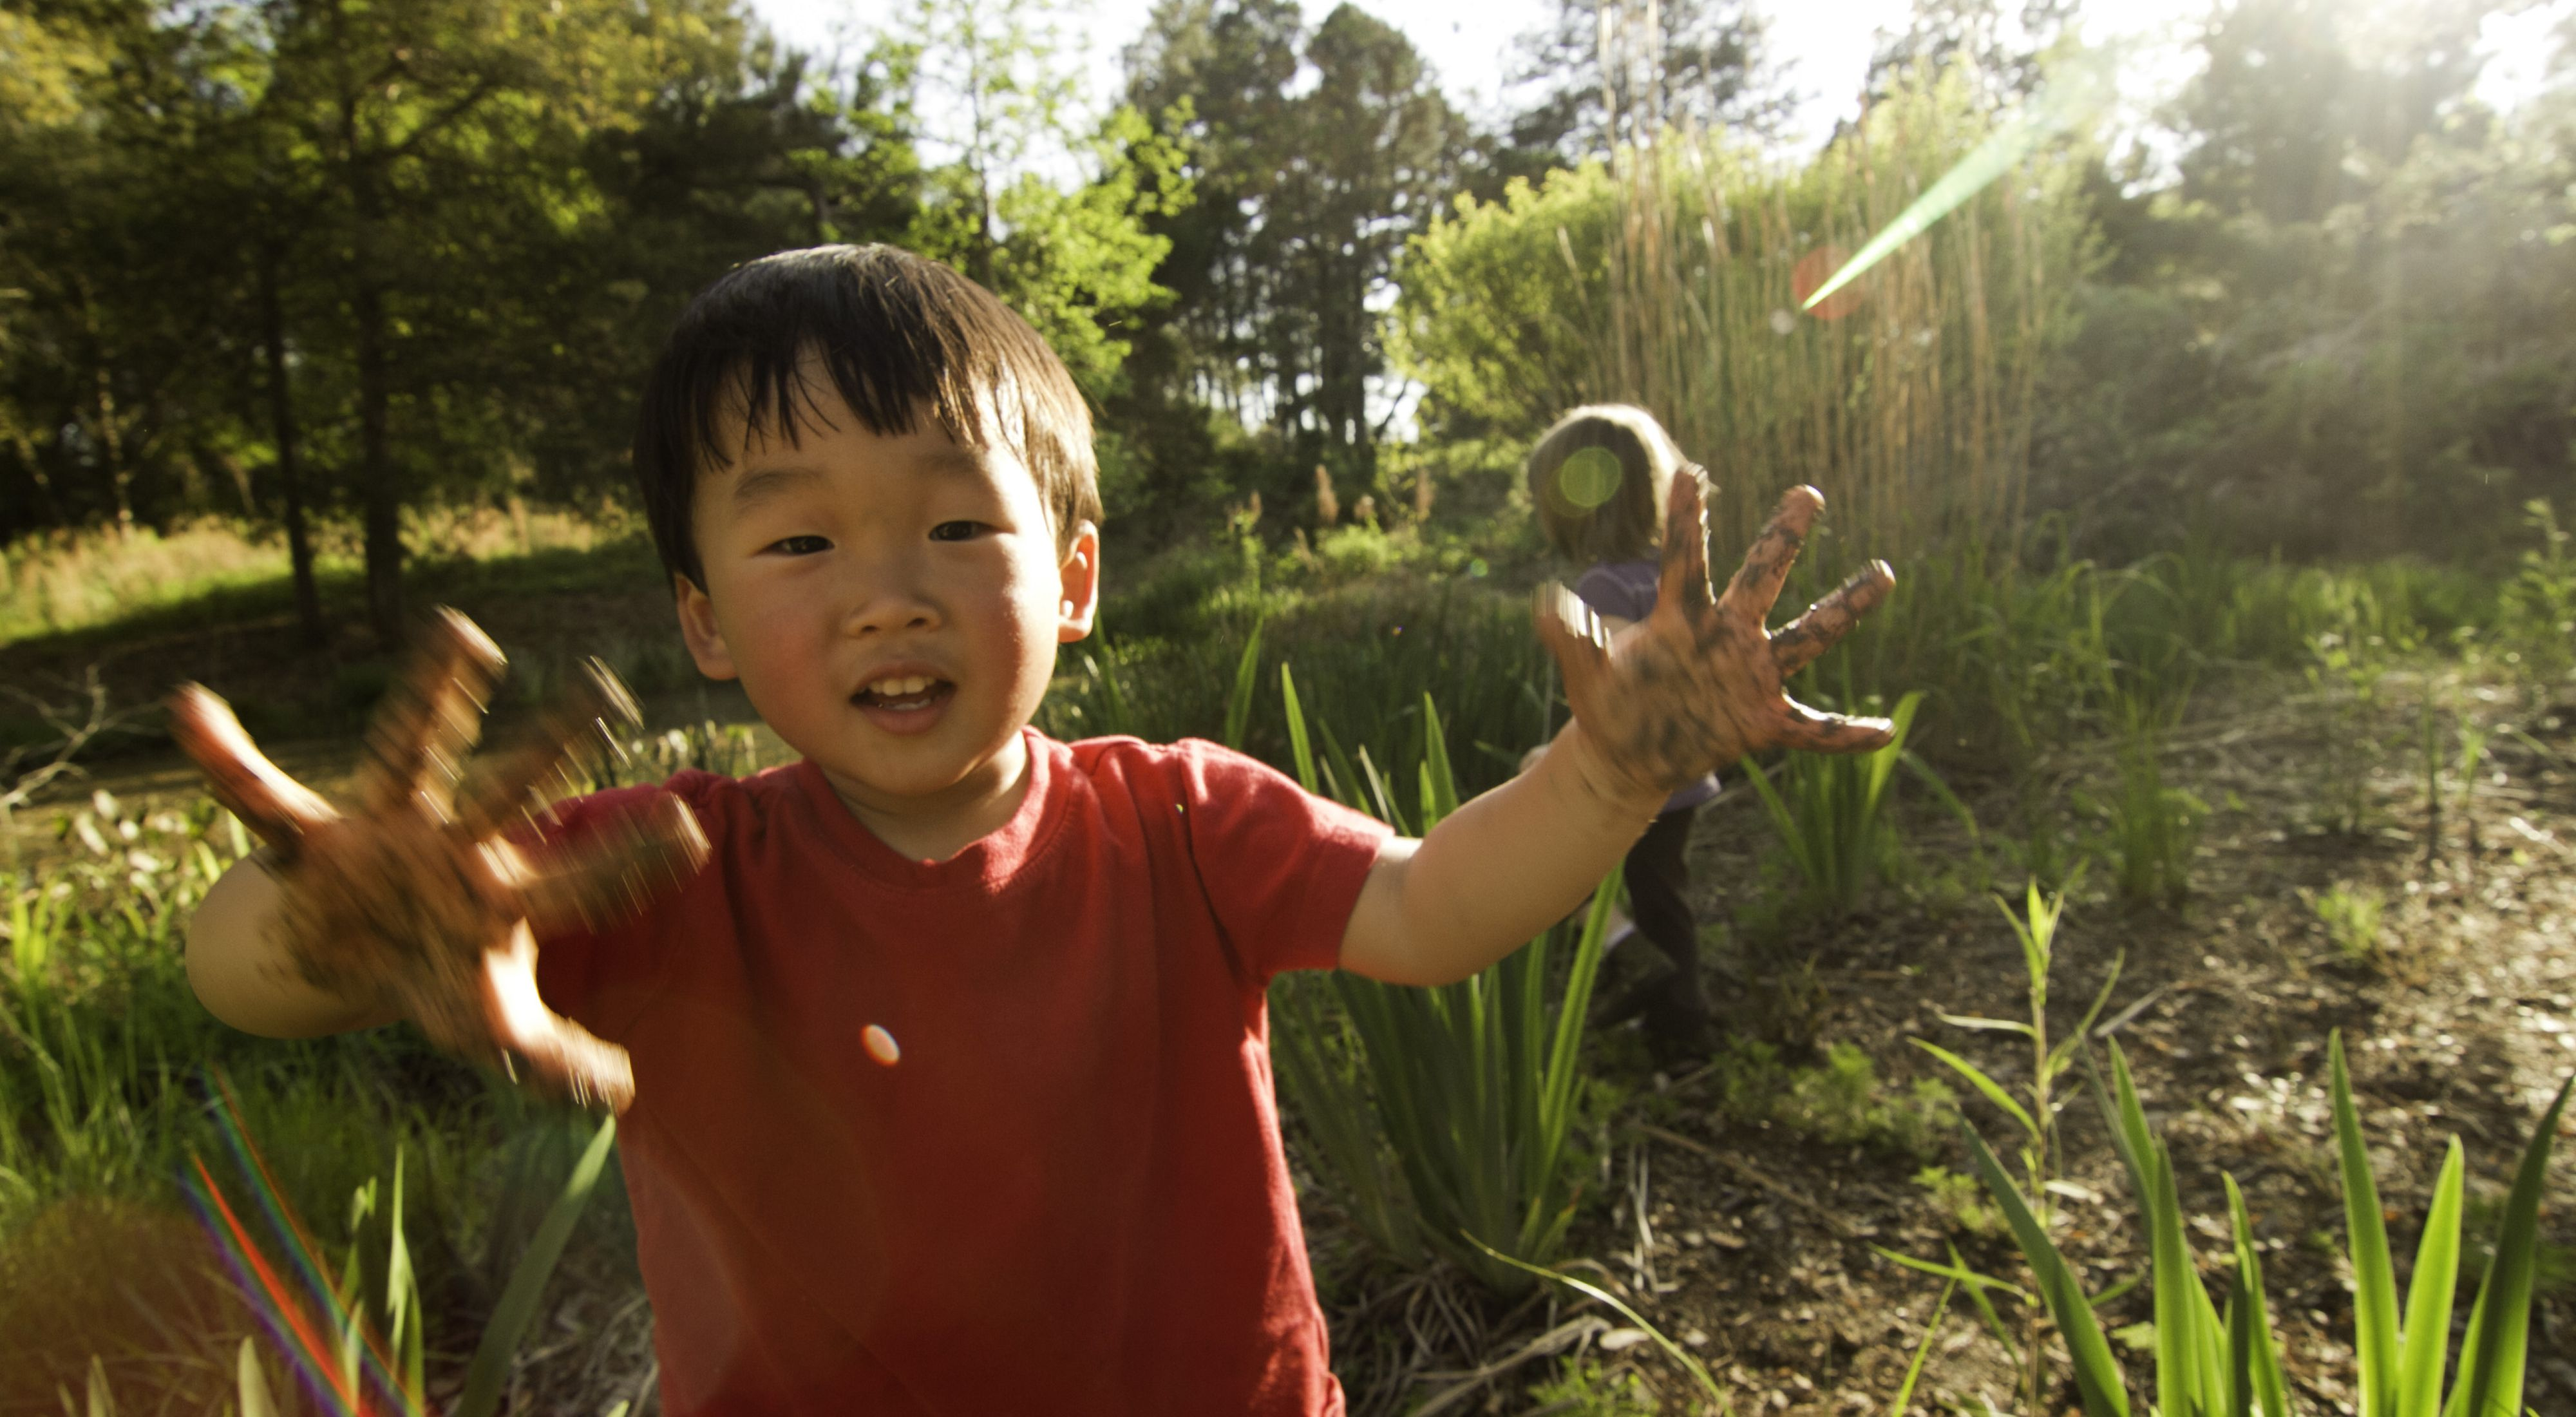 Toddler walks in forested area with mud on his hands.